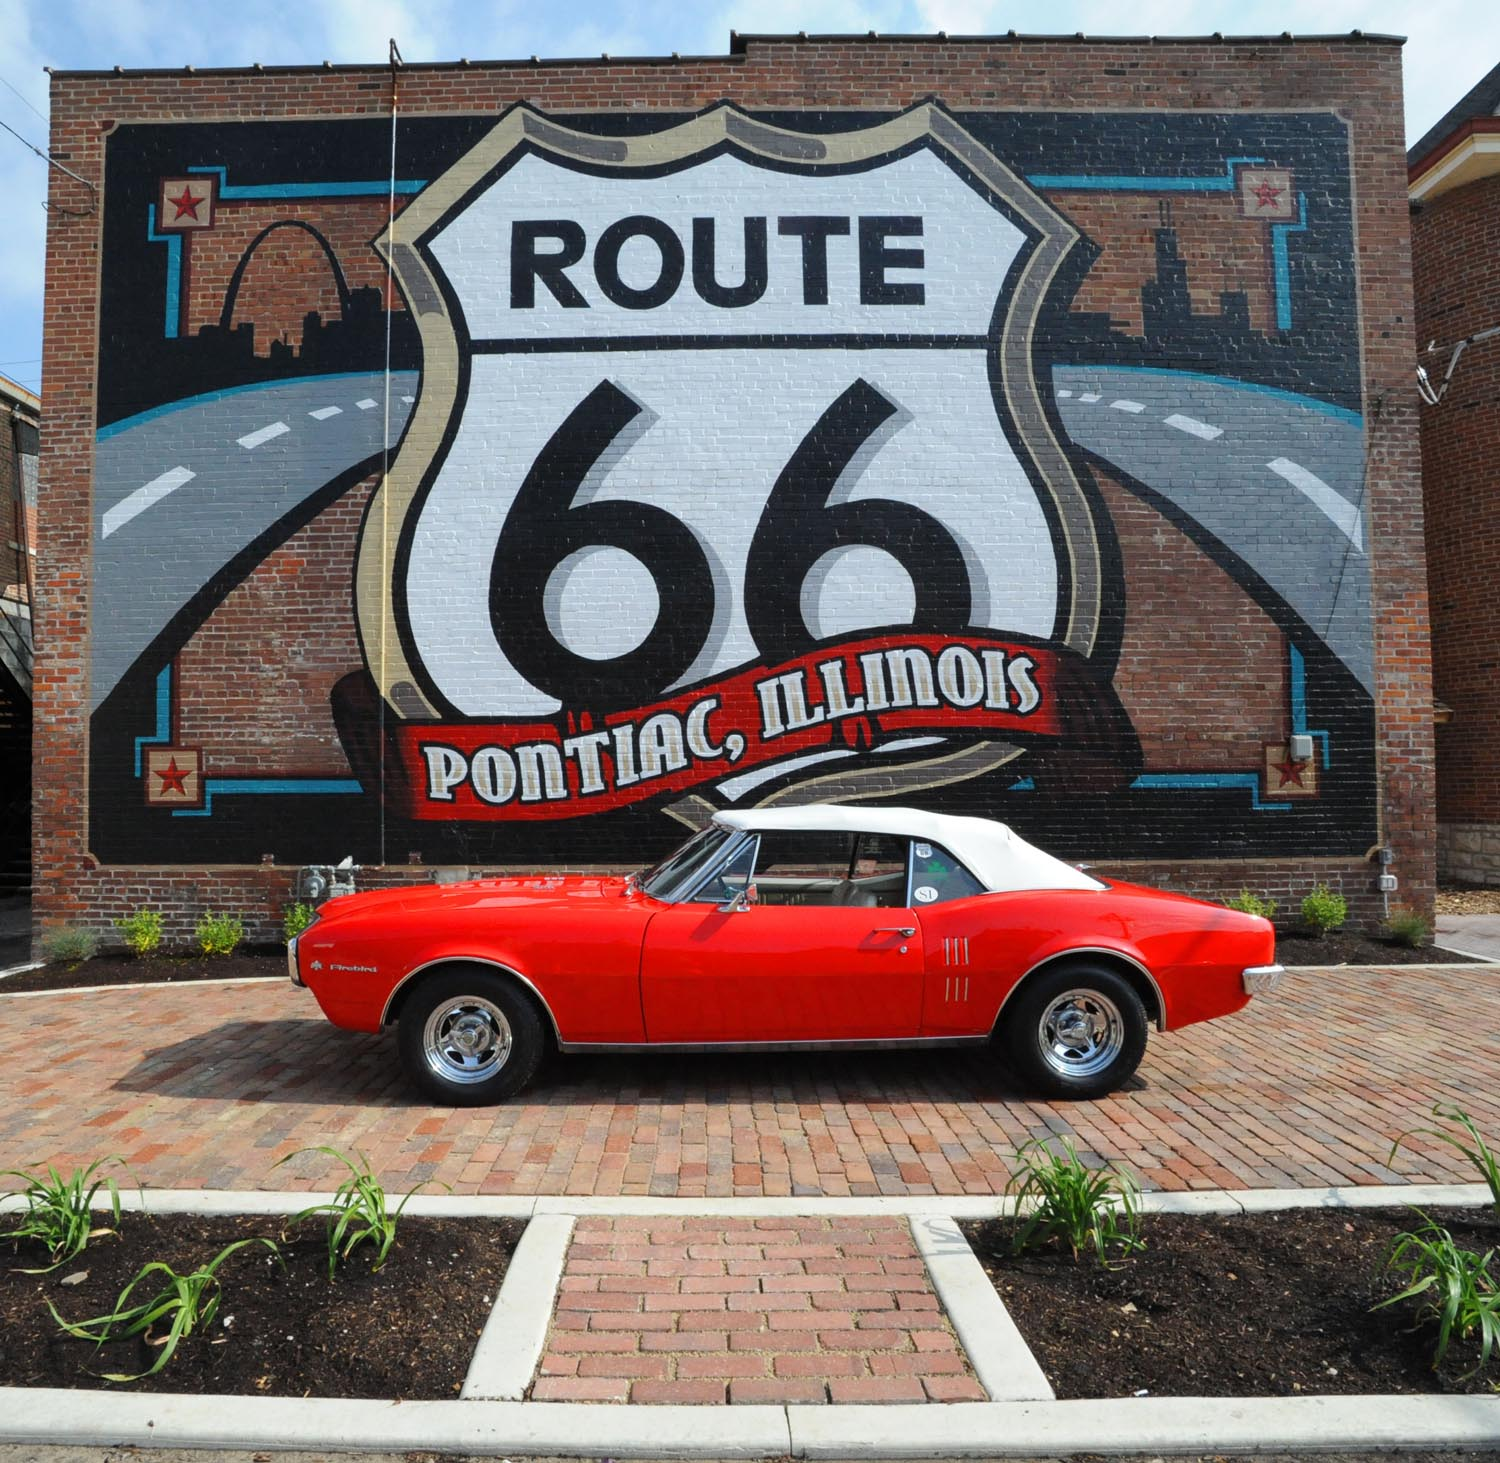 1967 FIREBIRD in front of Route 66 Mural